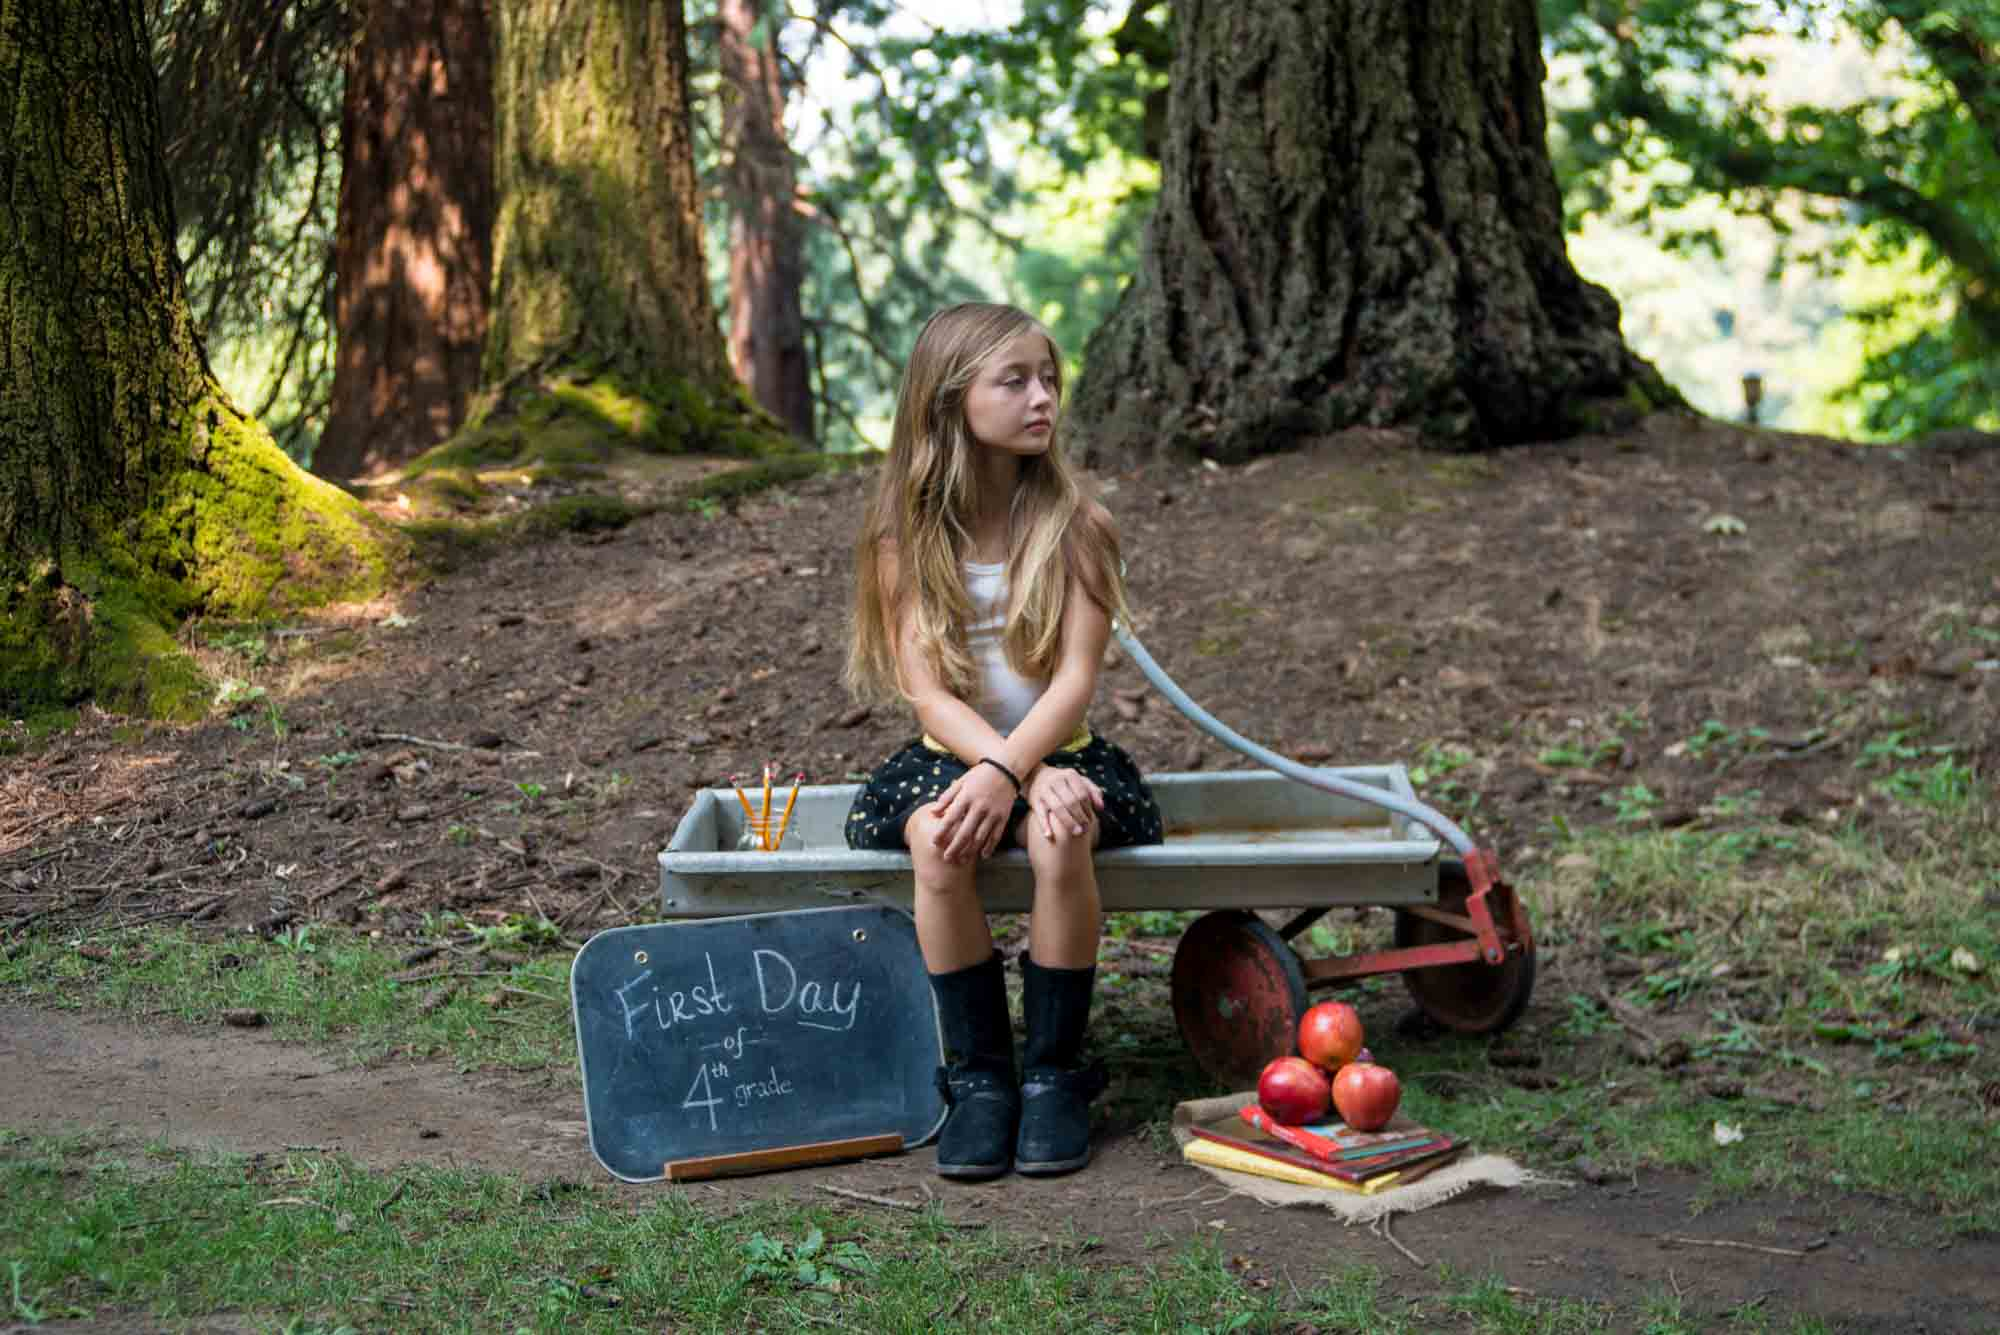 Back to school photo girl in park with wagon